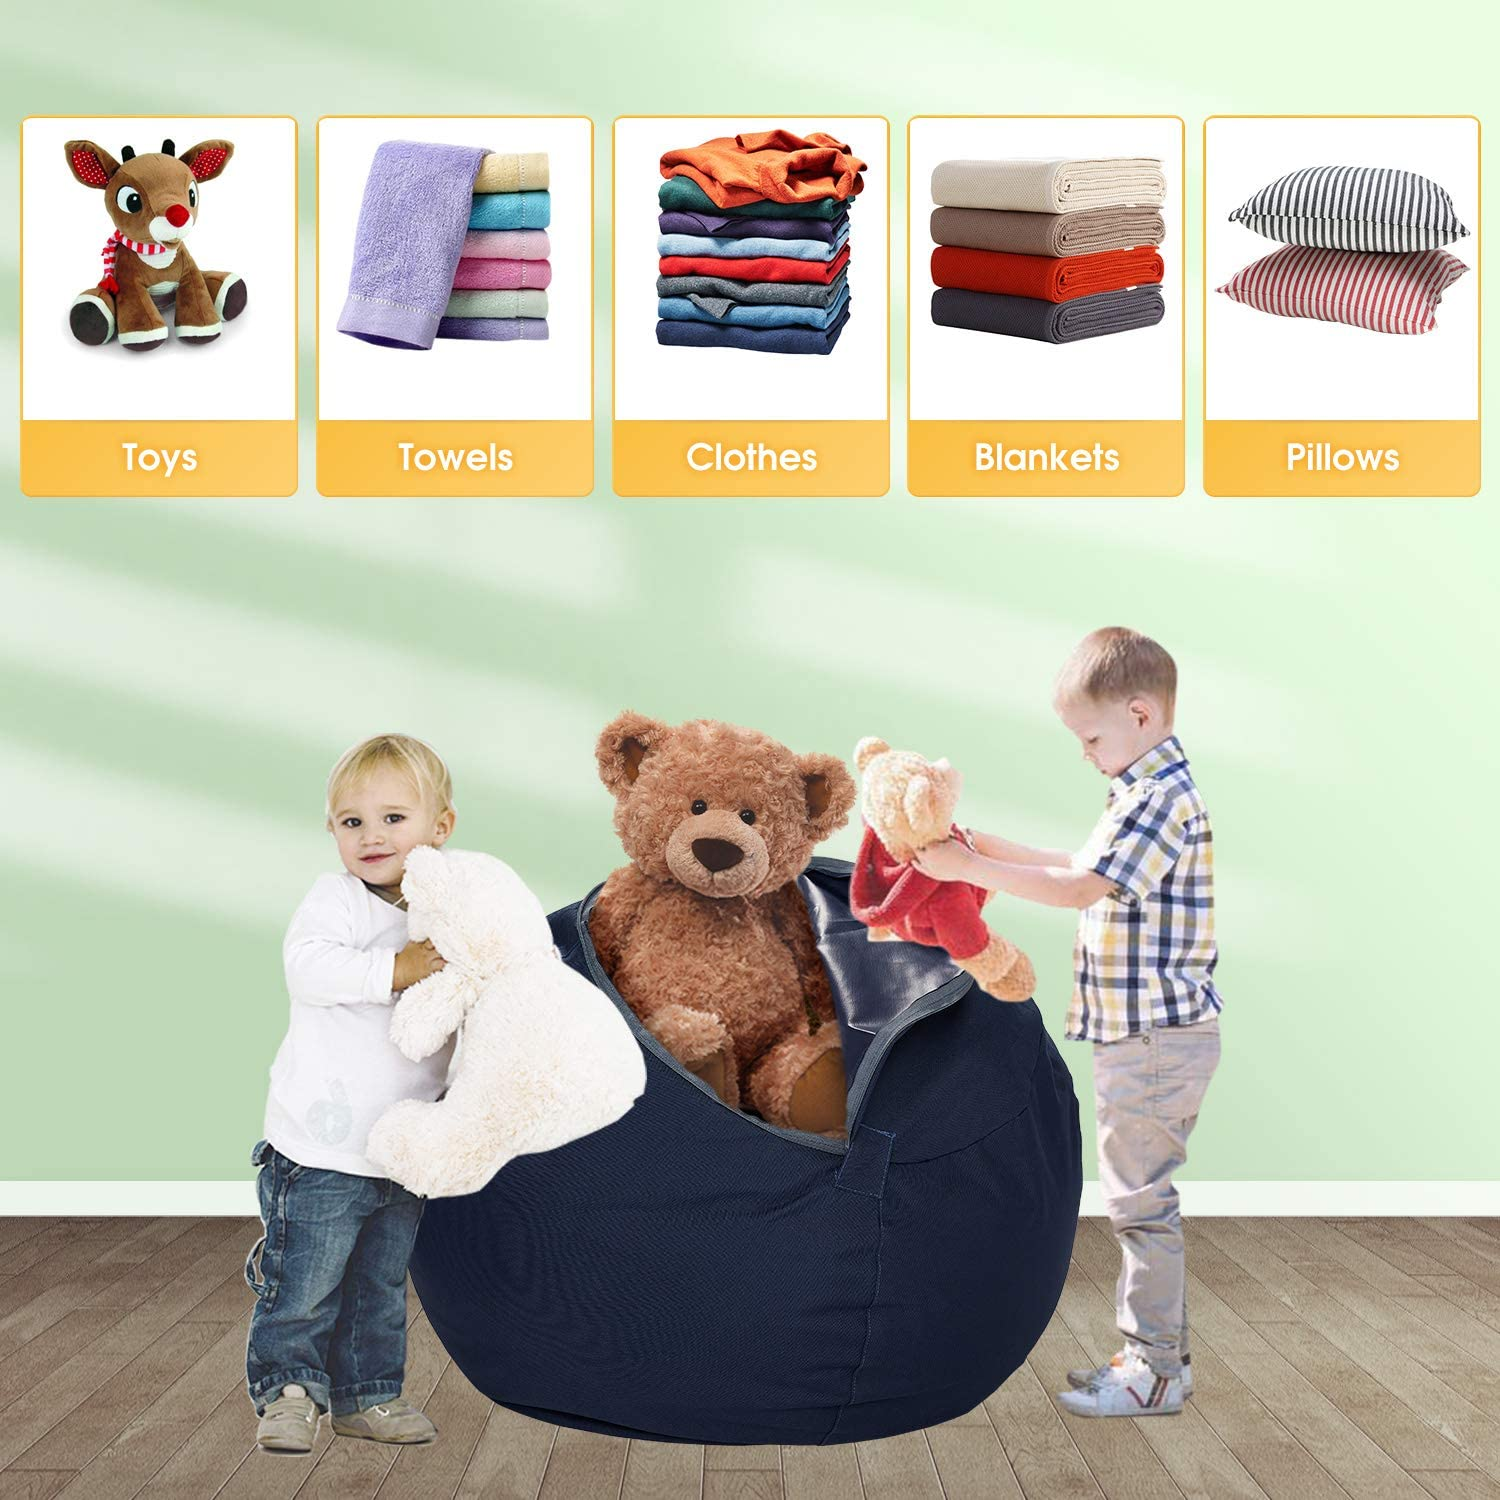 Zipper Beanbag for Organizing Children Plush Toys Goodking Stuffed Animal Storage Bean Bag Chair Cover for Kids and Adults 35 Large Premium Canvas Orange